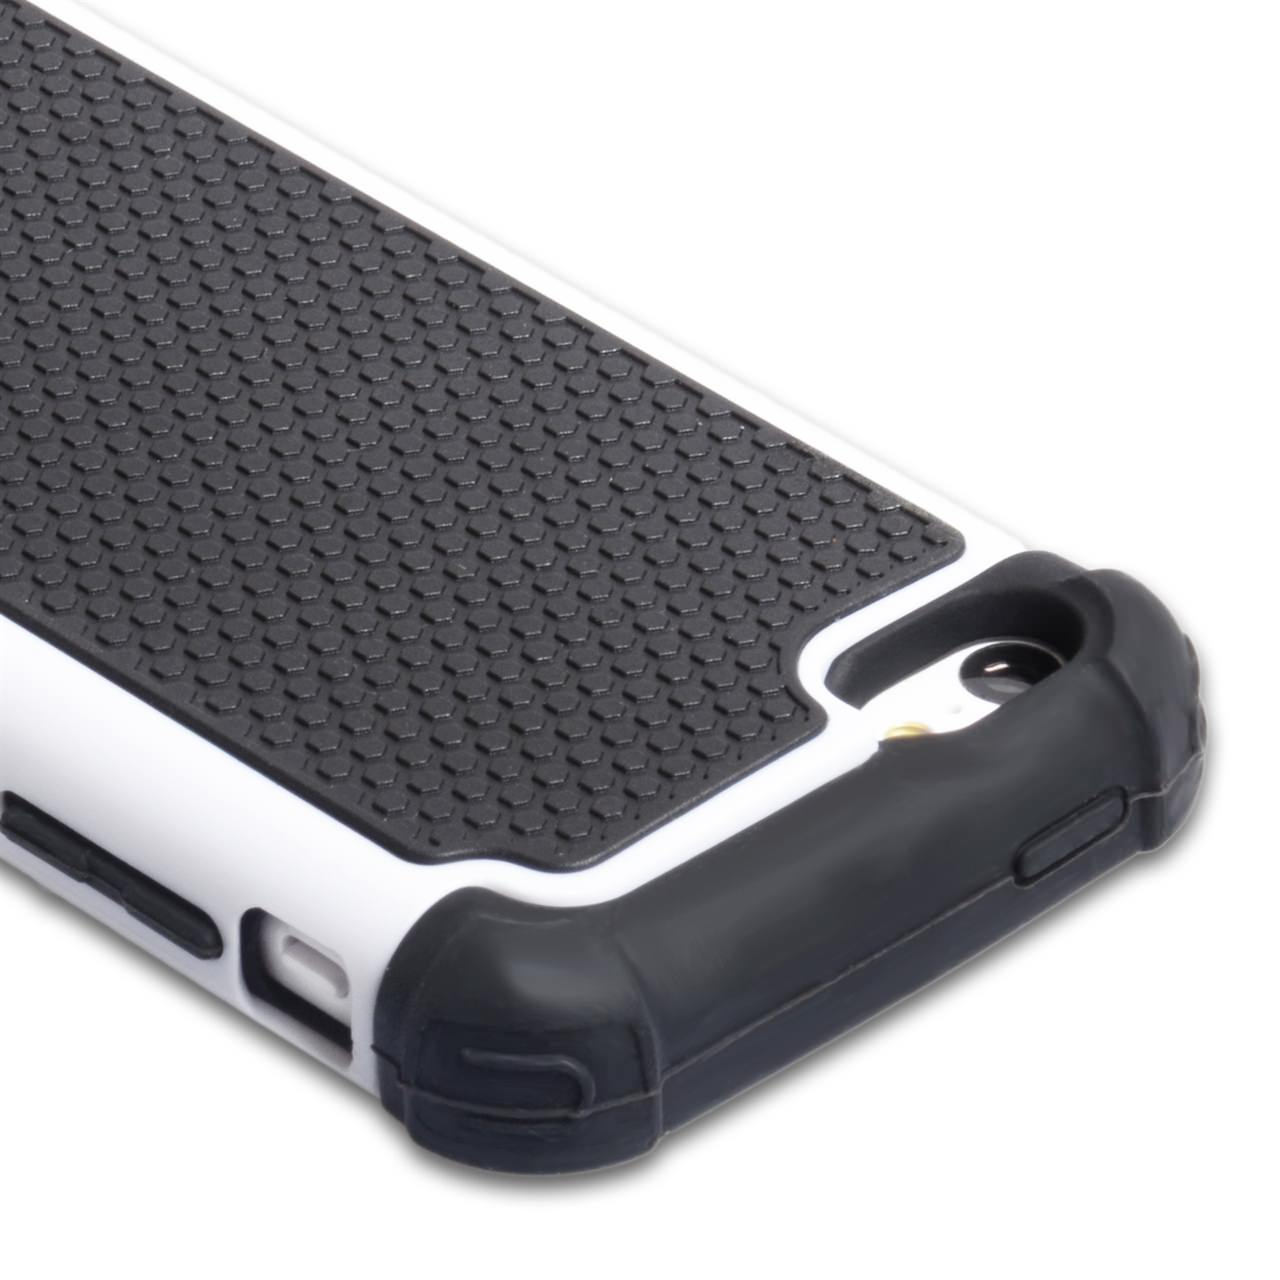 YouSave Accessories iPhone 5C Grip Combo Case - White